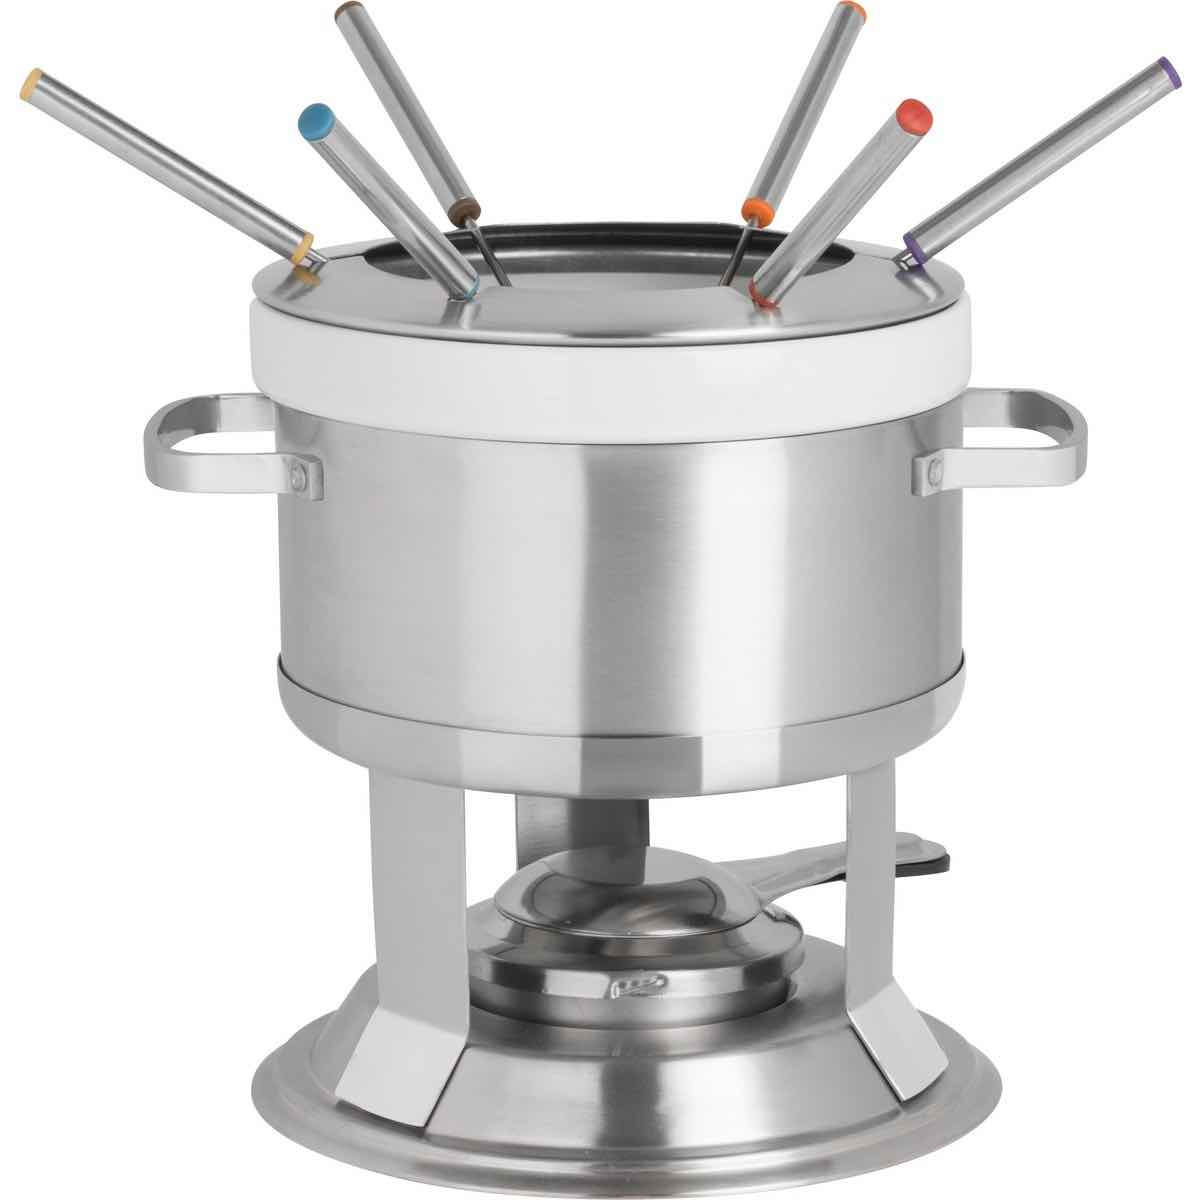 Camelia 3-in-1 Fondue Set